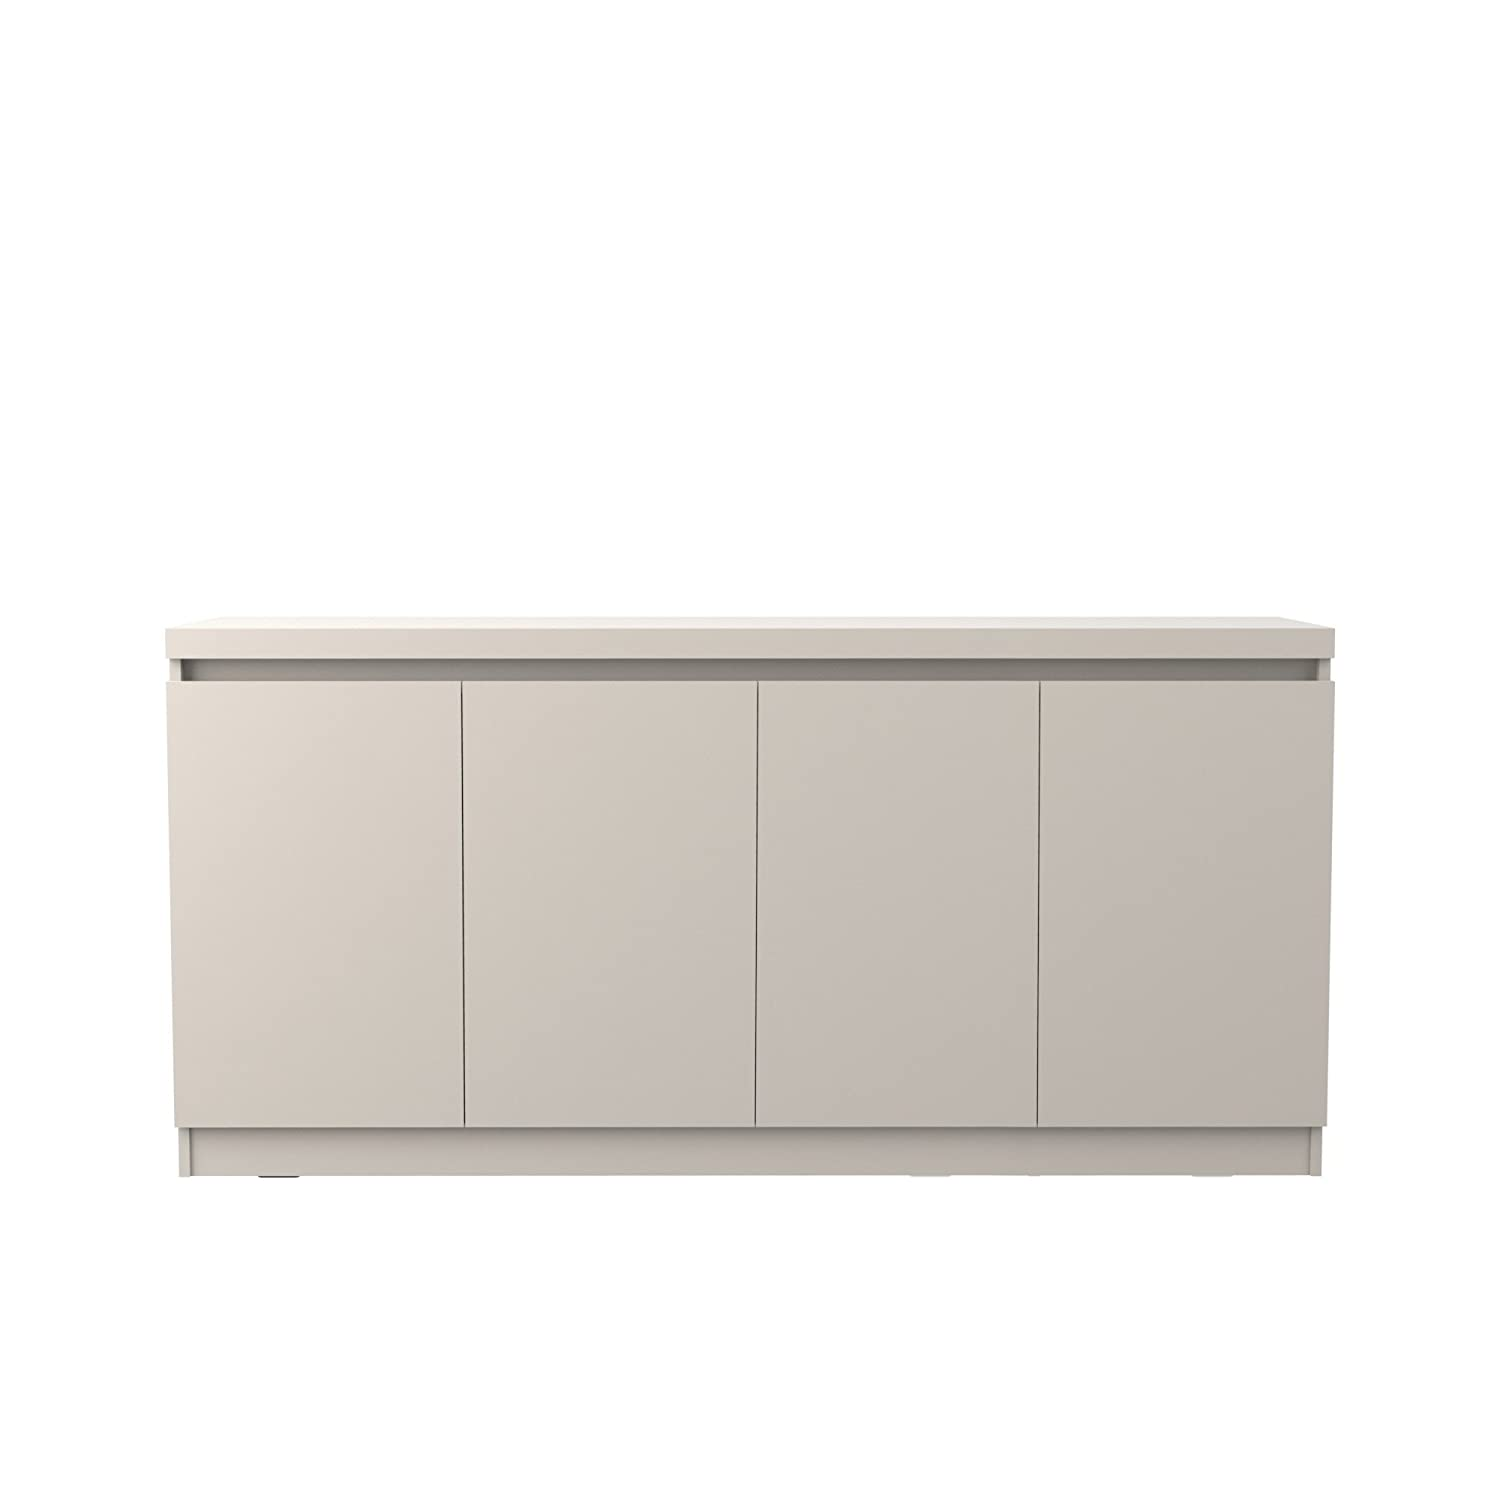 Manhattan Comfort Viennese Large Dining Room Buffet with Storage Off-White